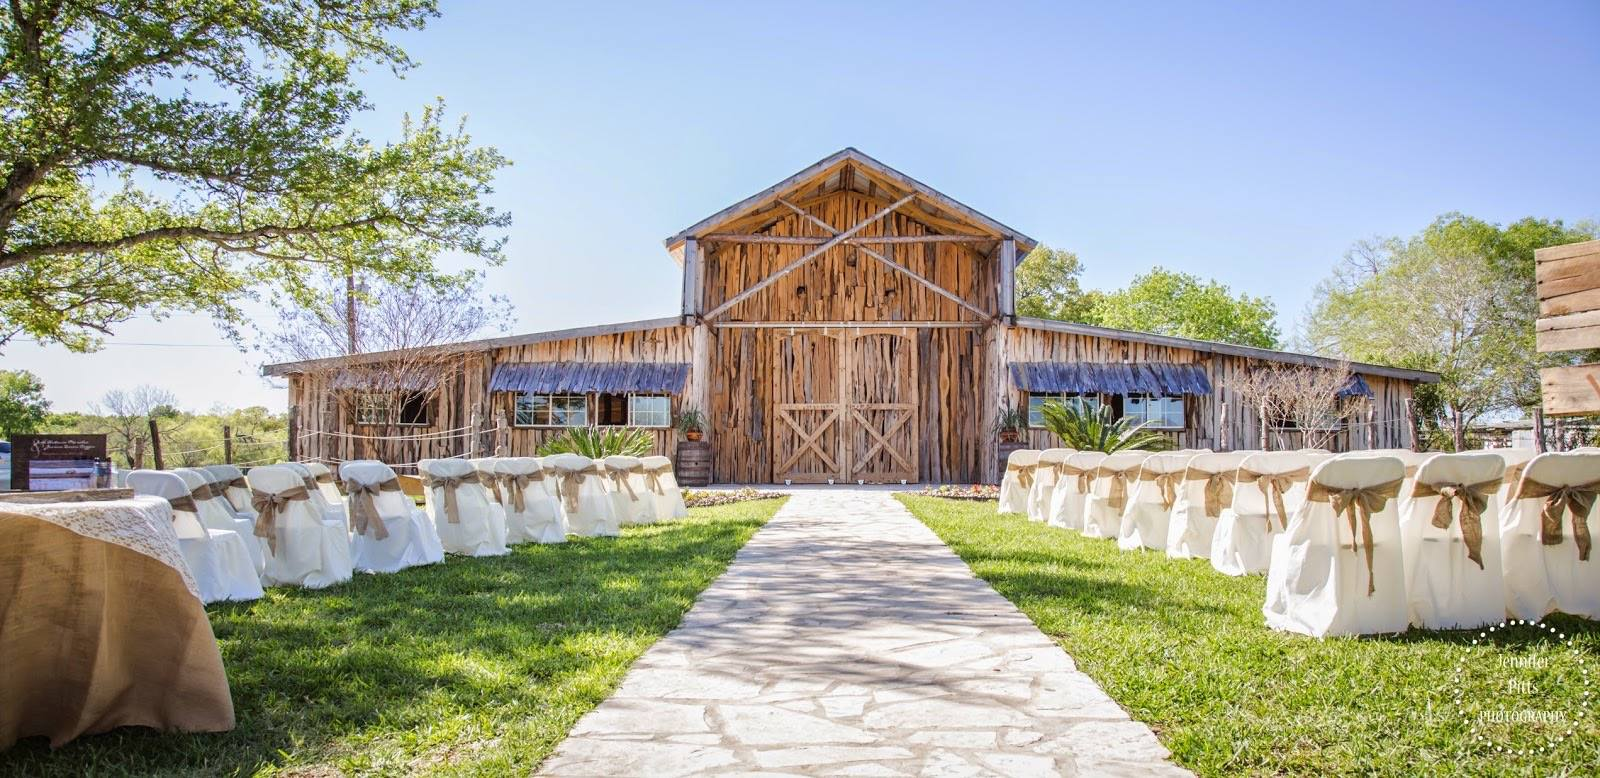 Rancho La Mission | Venues & Event Spaces at 14047 Henze Rd - San Antonio TX - Reviews - Photos - Phone Number